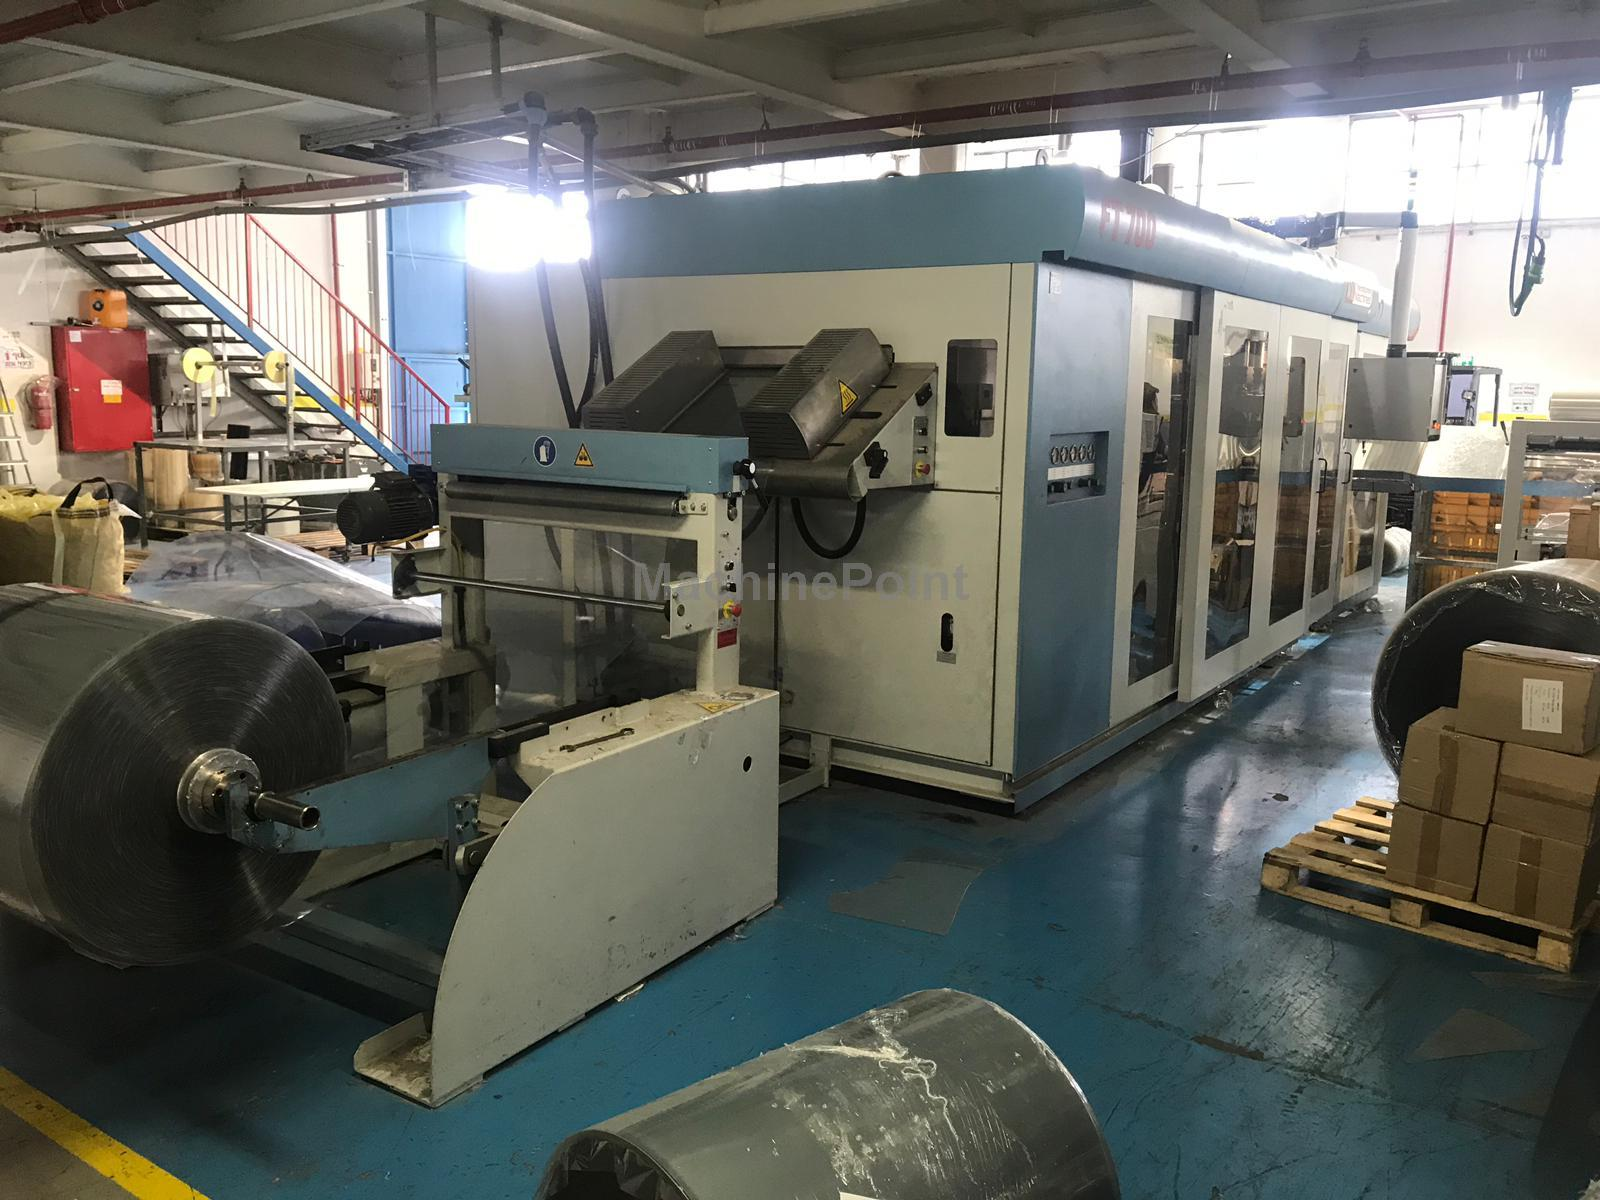 W.M. WRAPPING MACHINERY SA - FT 700 - Maquinaria usada - MachinePoint